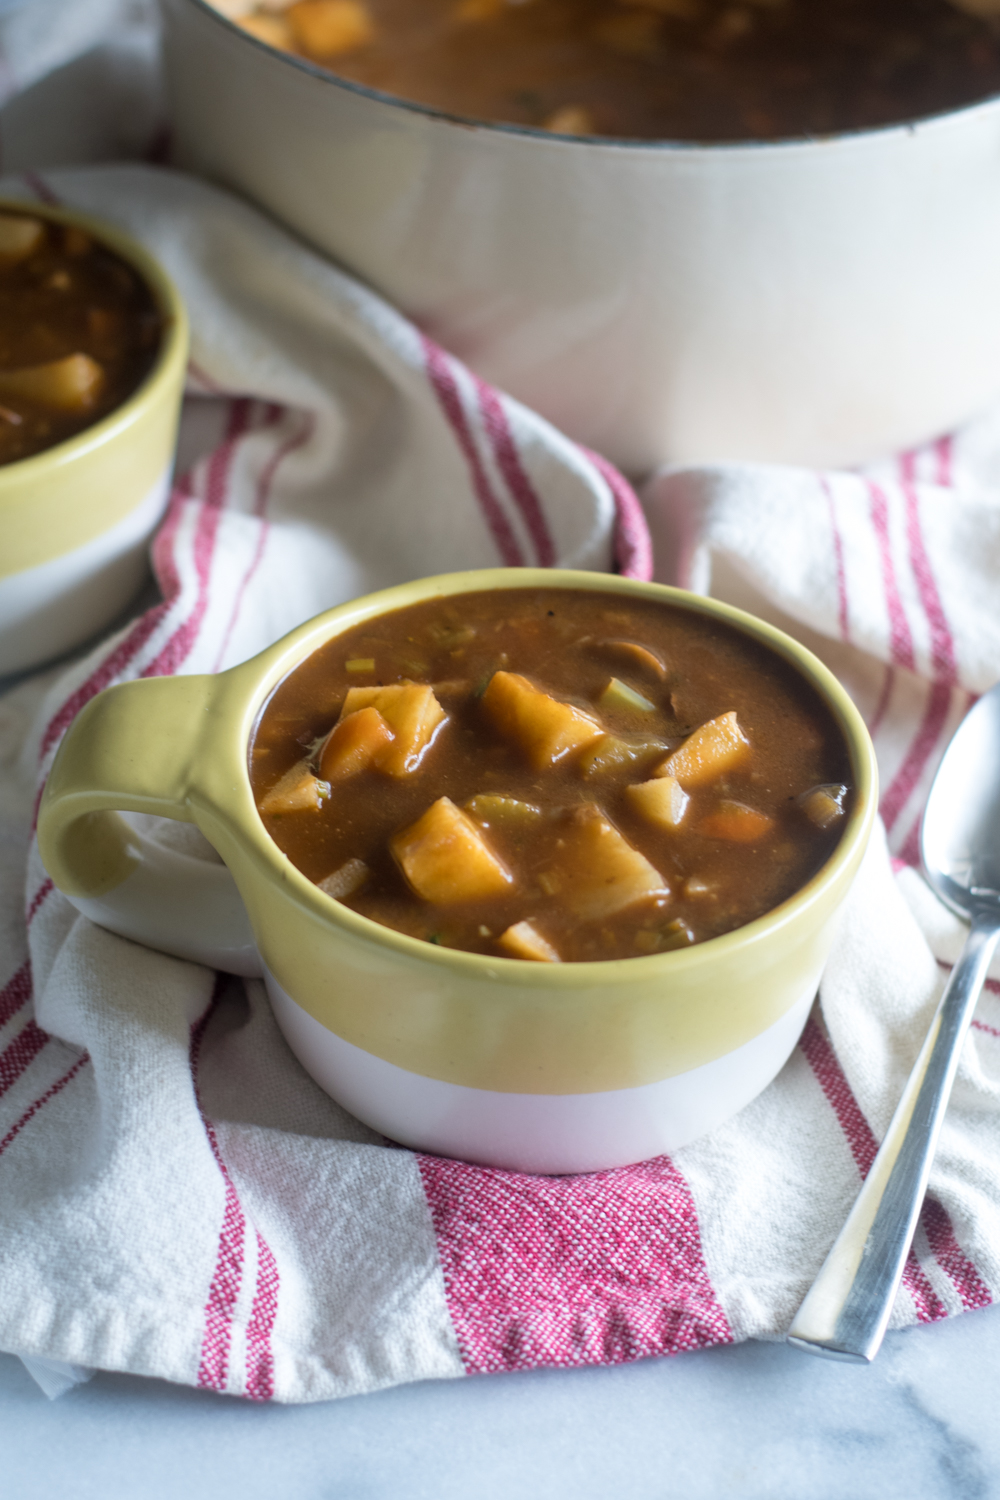 This Vegan Irish Stew is perfect for St. Patrick's Day! Hearty root vegetables are cooked in a rich stout based stock.